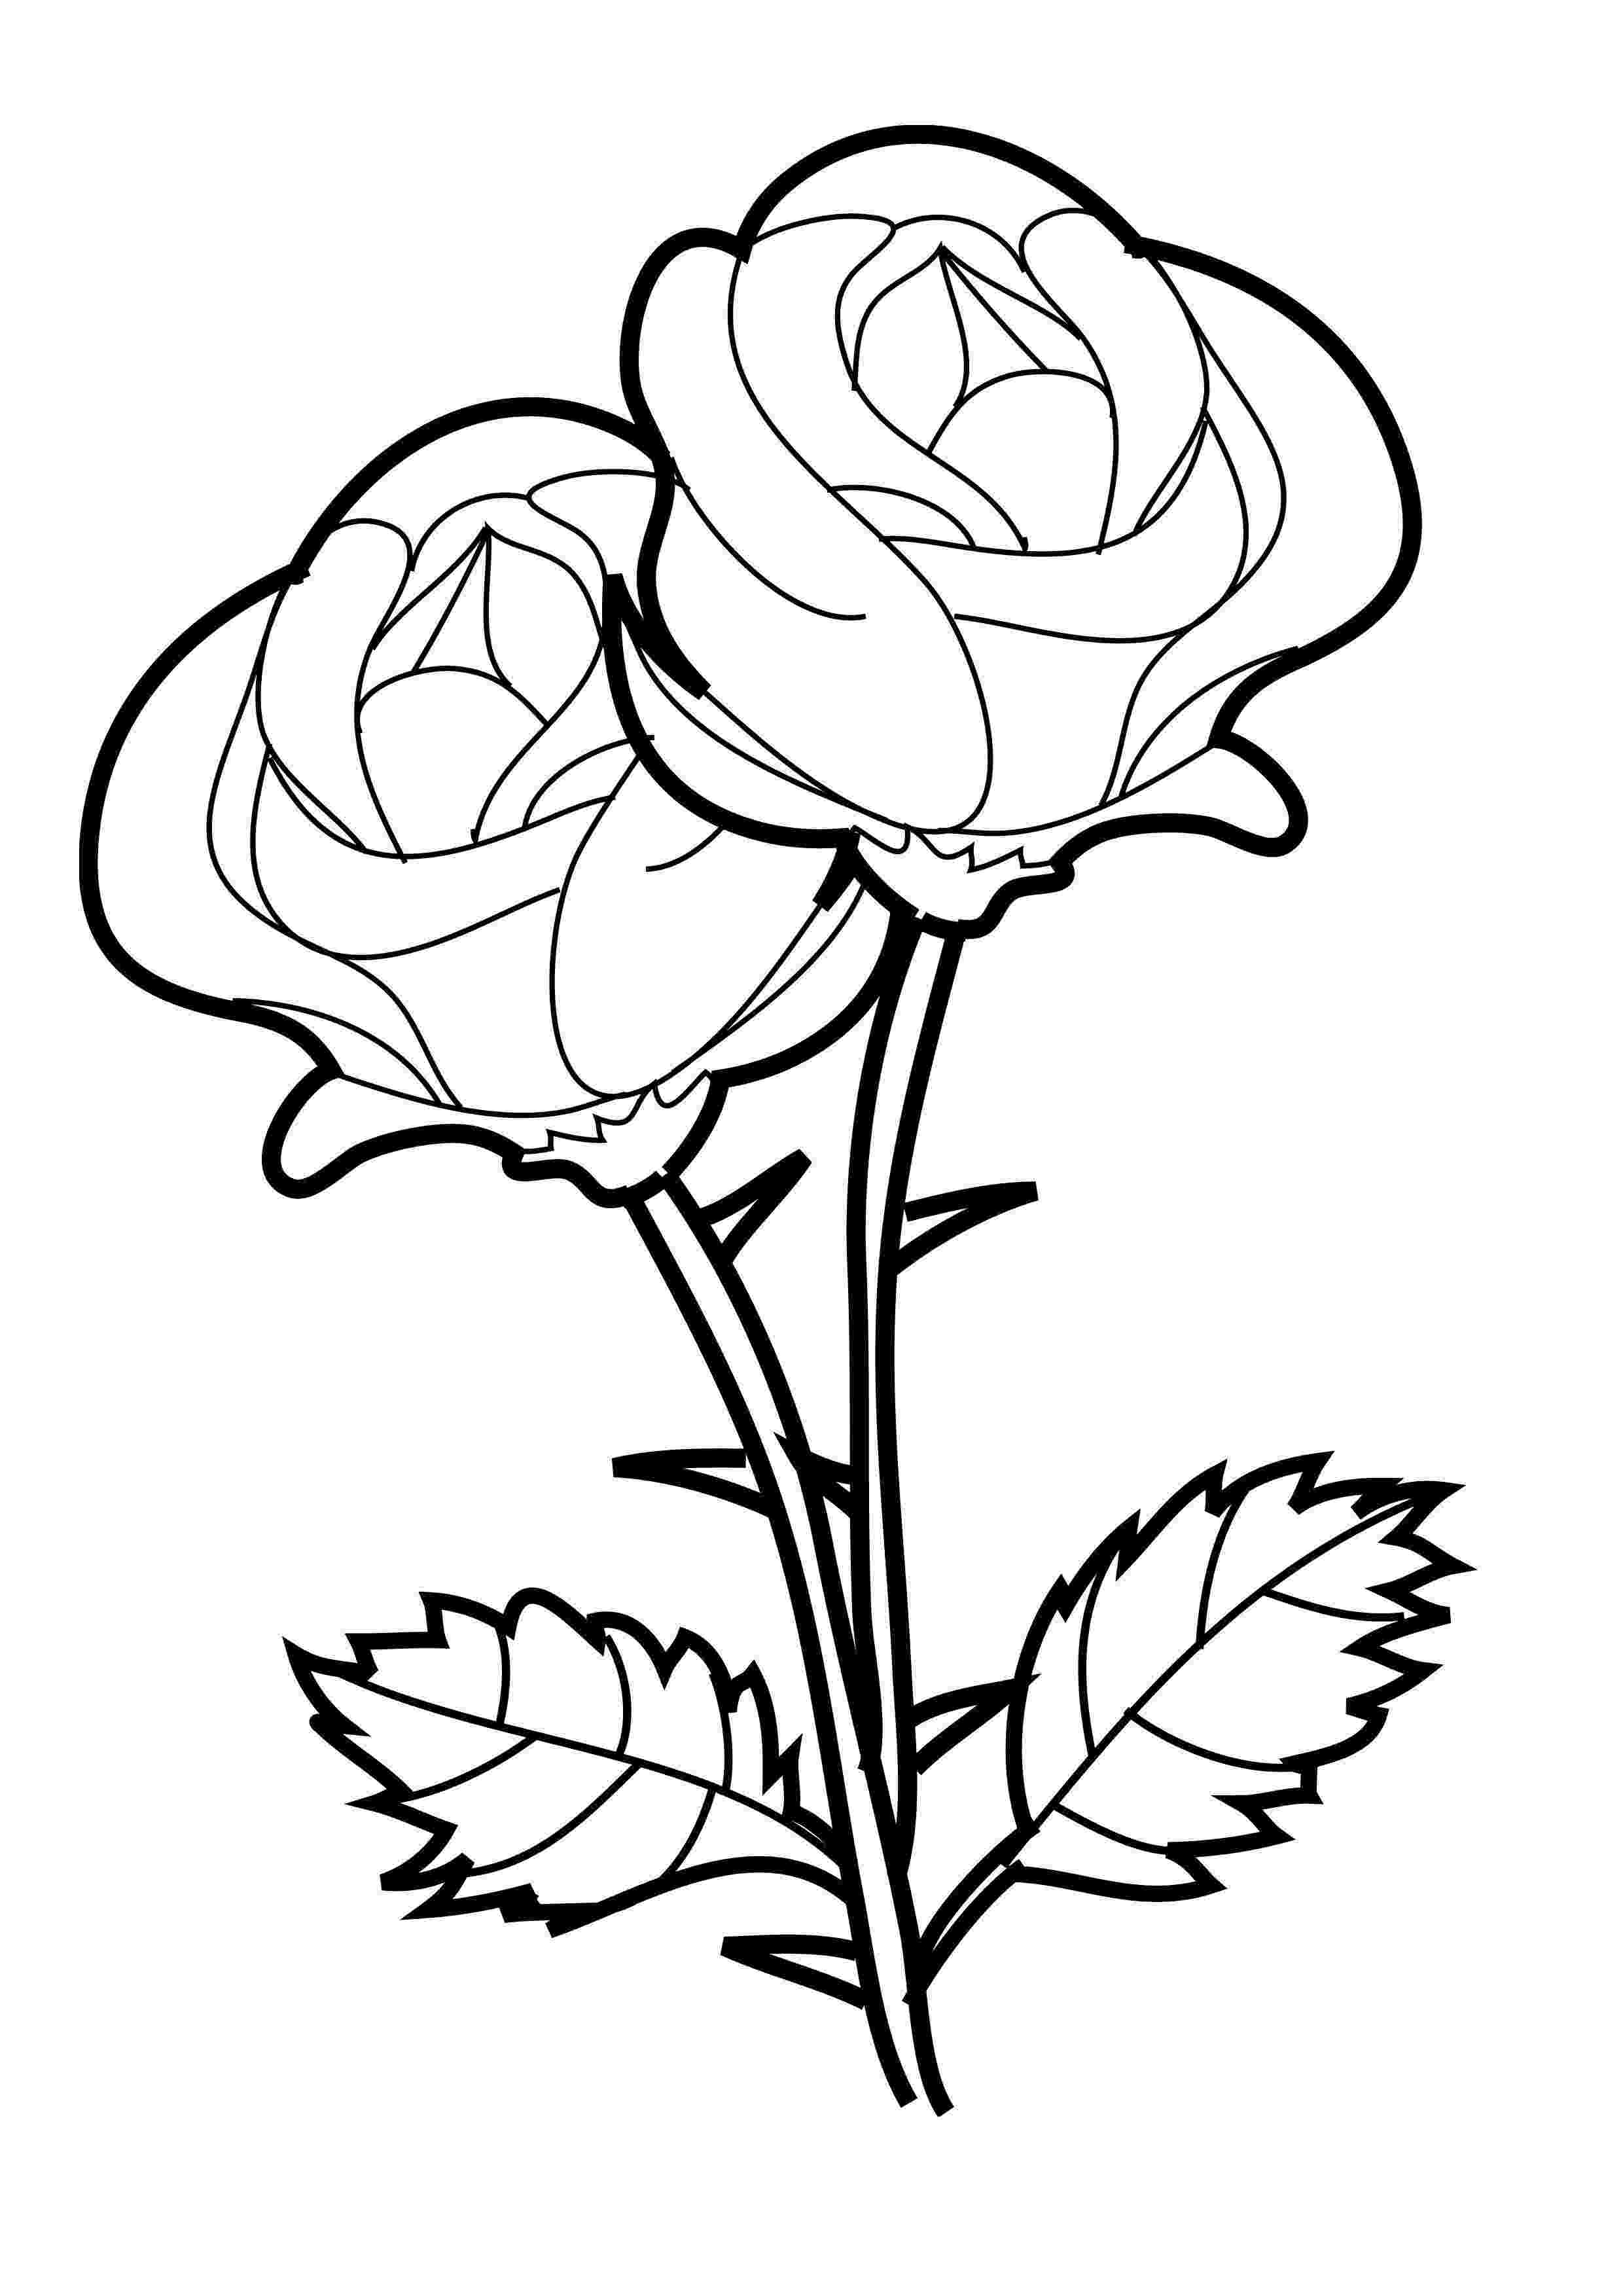 roses color pages printable rose coloring pages for kids cool2bkids roses pages color